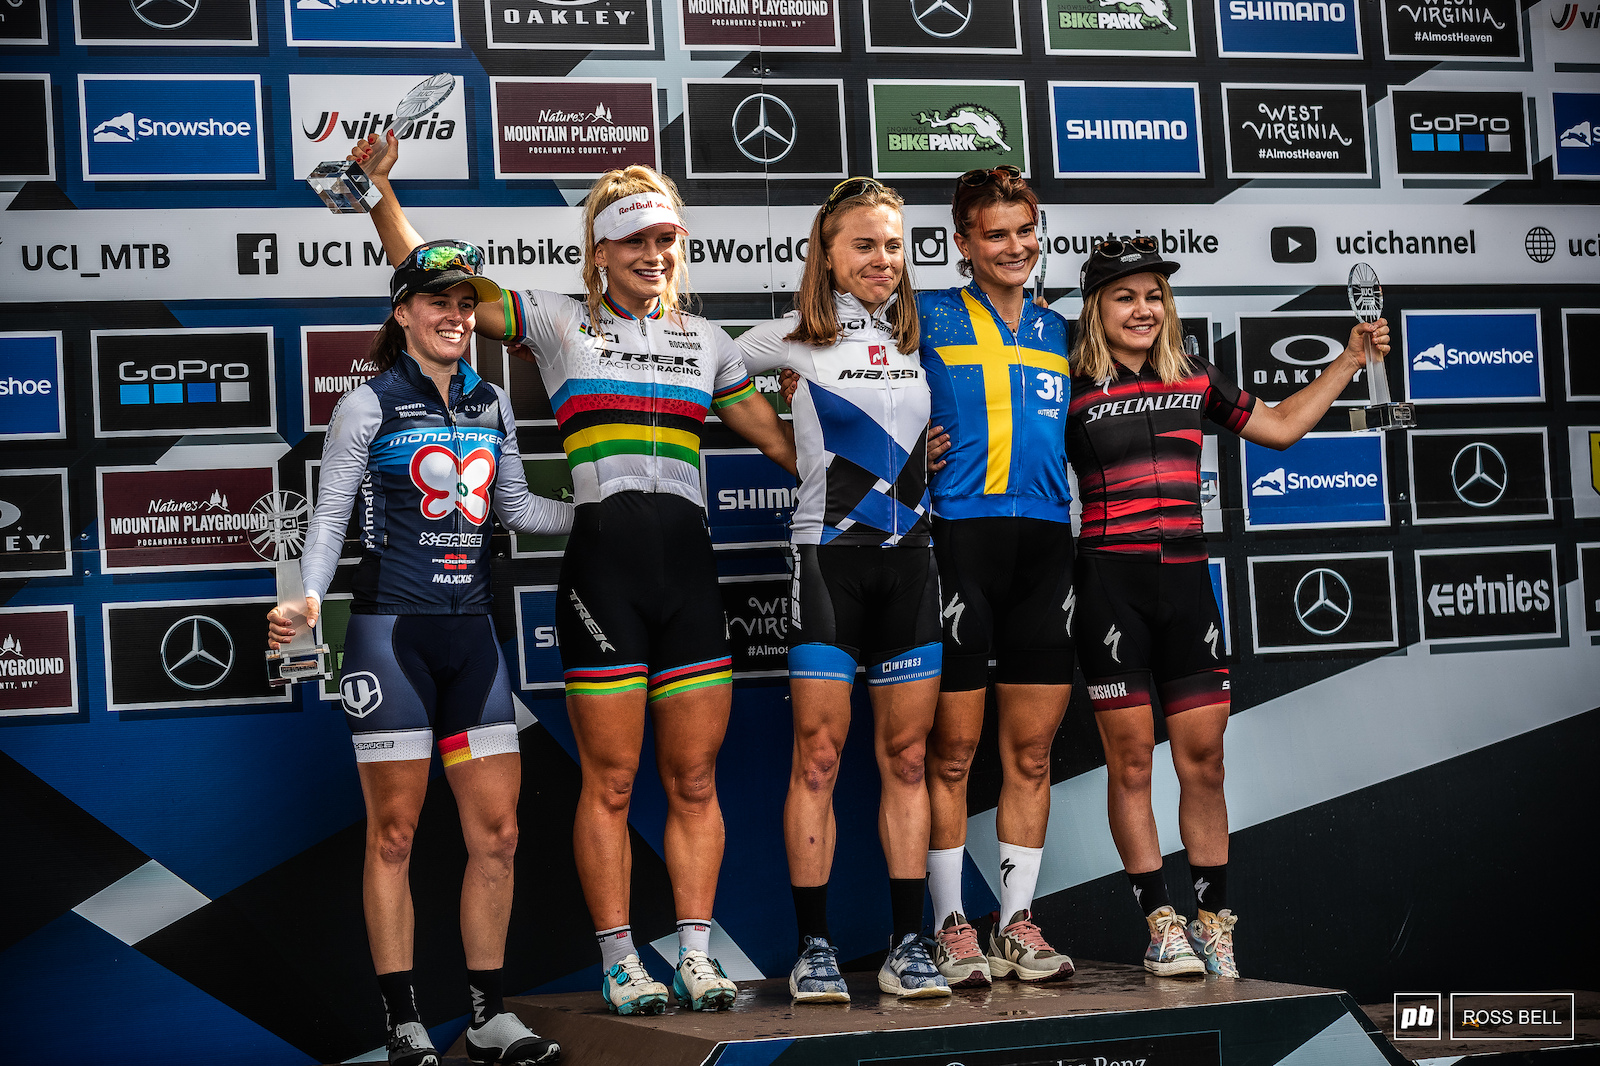 Loana Lecomte missed the final race but still managed to take the overall after dominating the early part of the season.